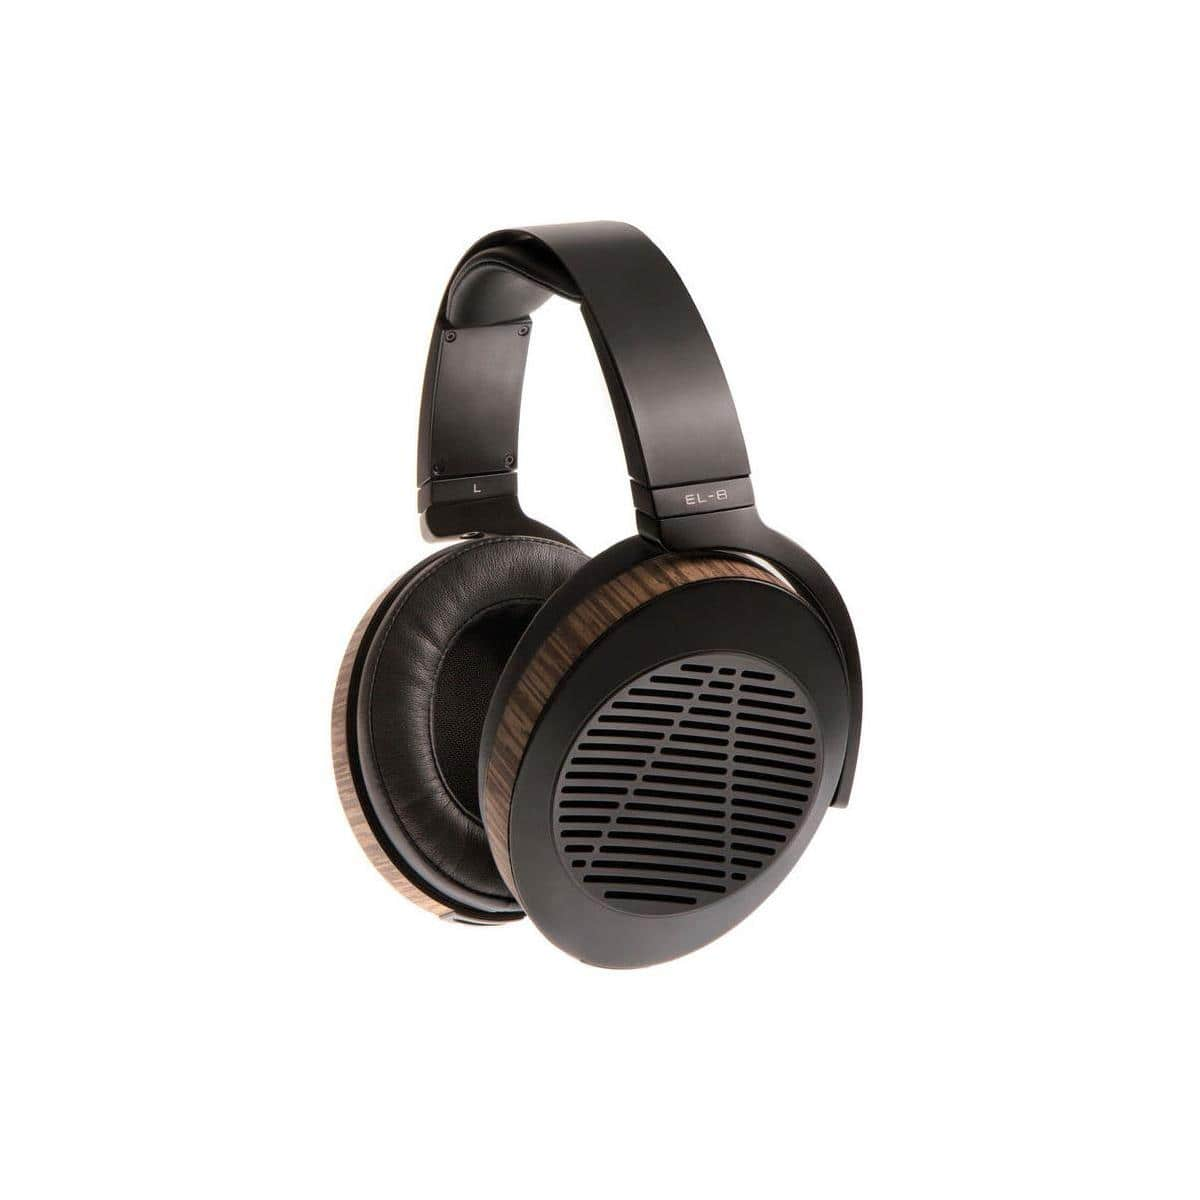 Audeze EL-8 Closed or Open Back Planar Magnetic Headphones (Refurbished): $400 each + free shipping